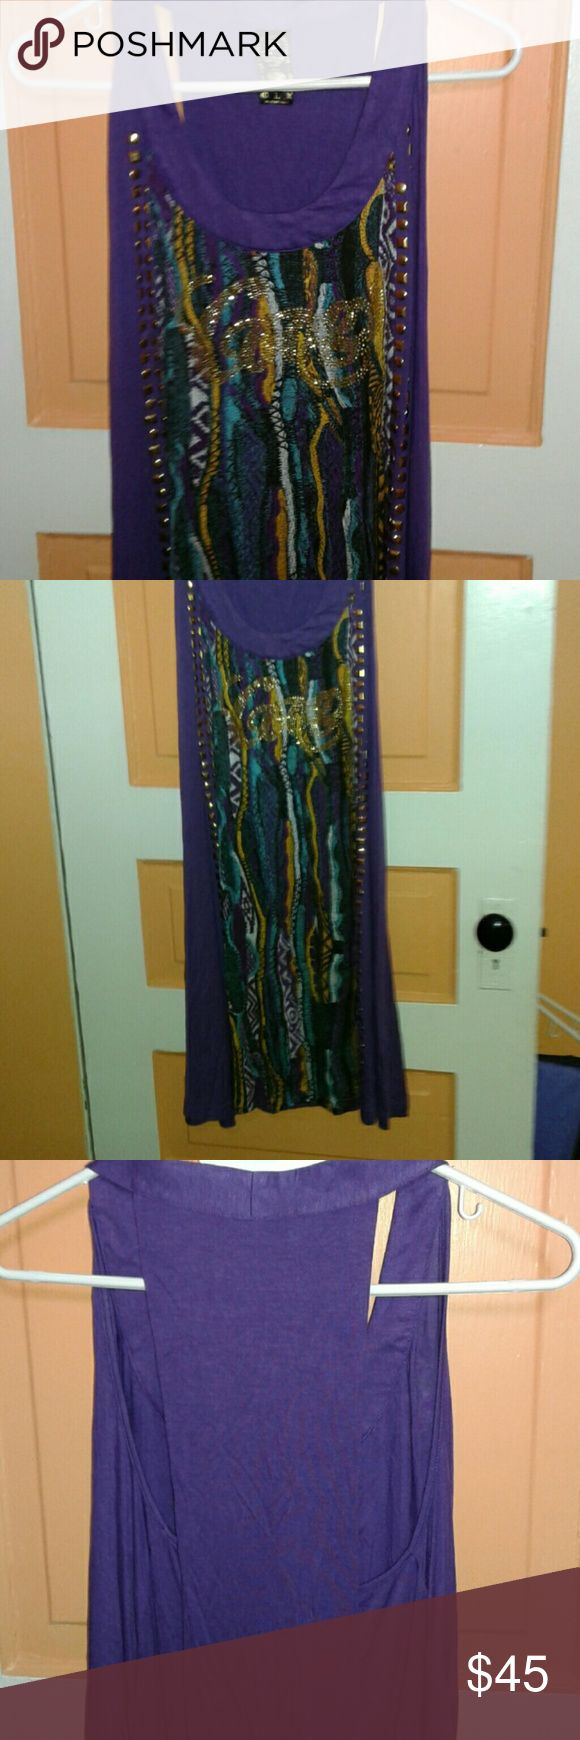 Ladies dress LADIES DRESS OR CAN BE WORN WITH LEGGINGS CUTE, PURPLE HAD GOLD STUDDS COMING DOWN BOTH SIDES HAS GOLD TURQUOISE BLACK, THE BACK IS OF COURSE SHOULDERLESS, IT COMES DOWN A LITTLE IN BACK , selling one in black to Coogi Dresses Midi